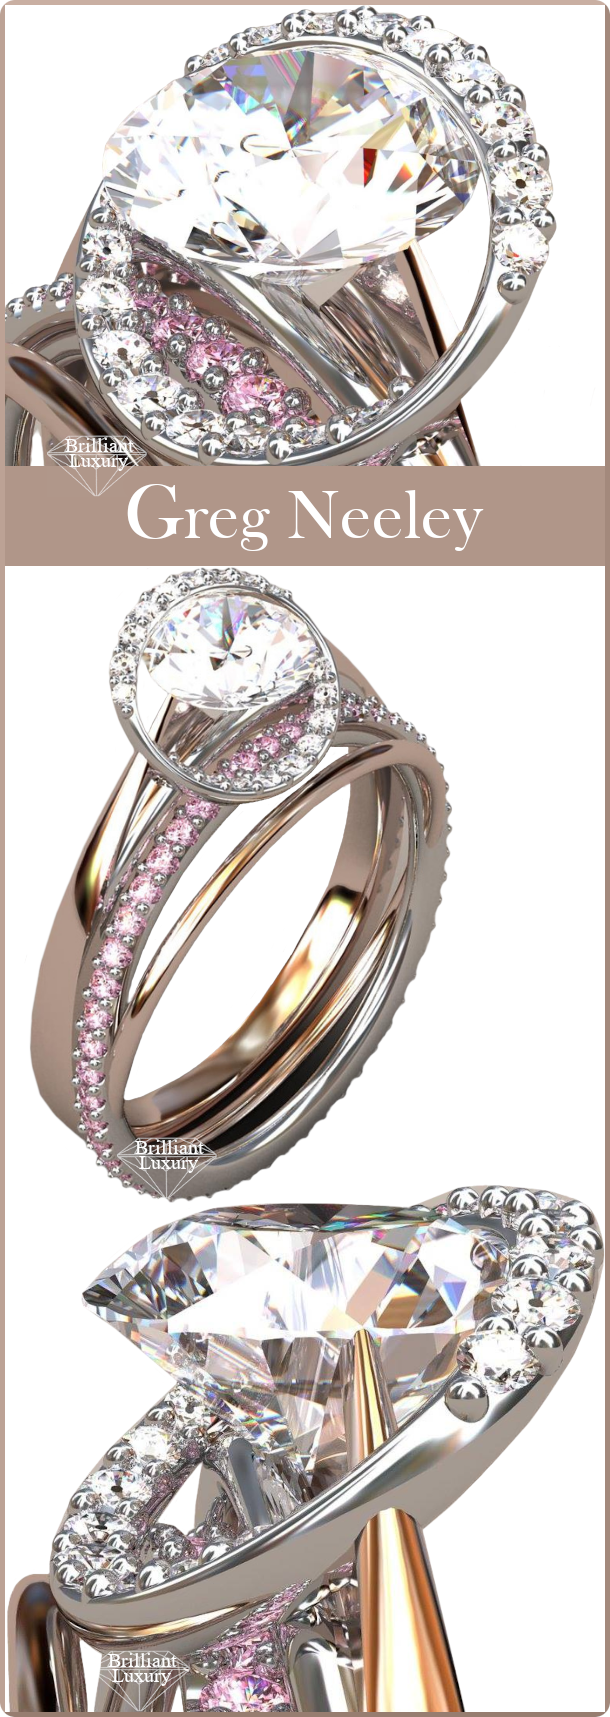 ♦Greg Neeley Award Winning Meteor Rose Gold Diamond Ring made of 18k rose and white gold with white and pink diamonds. Center diamond is 1ct